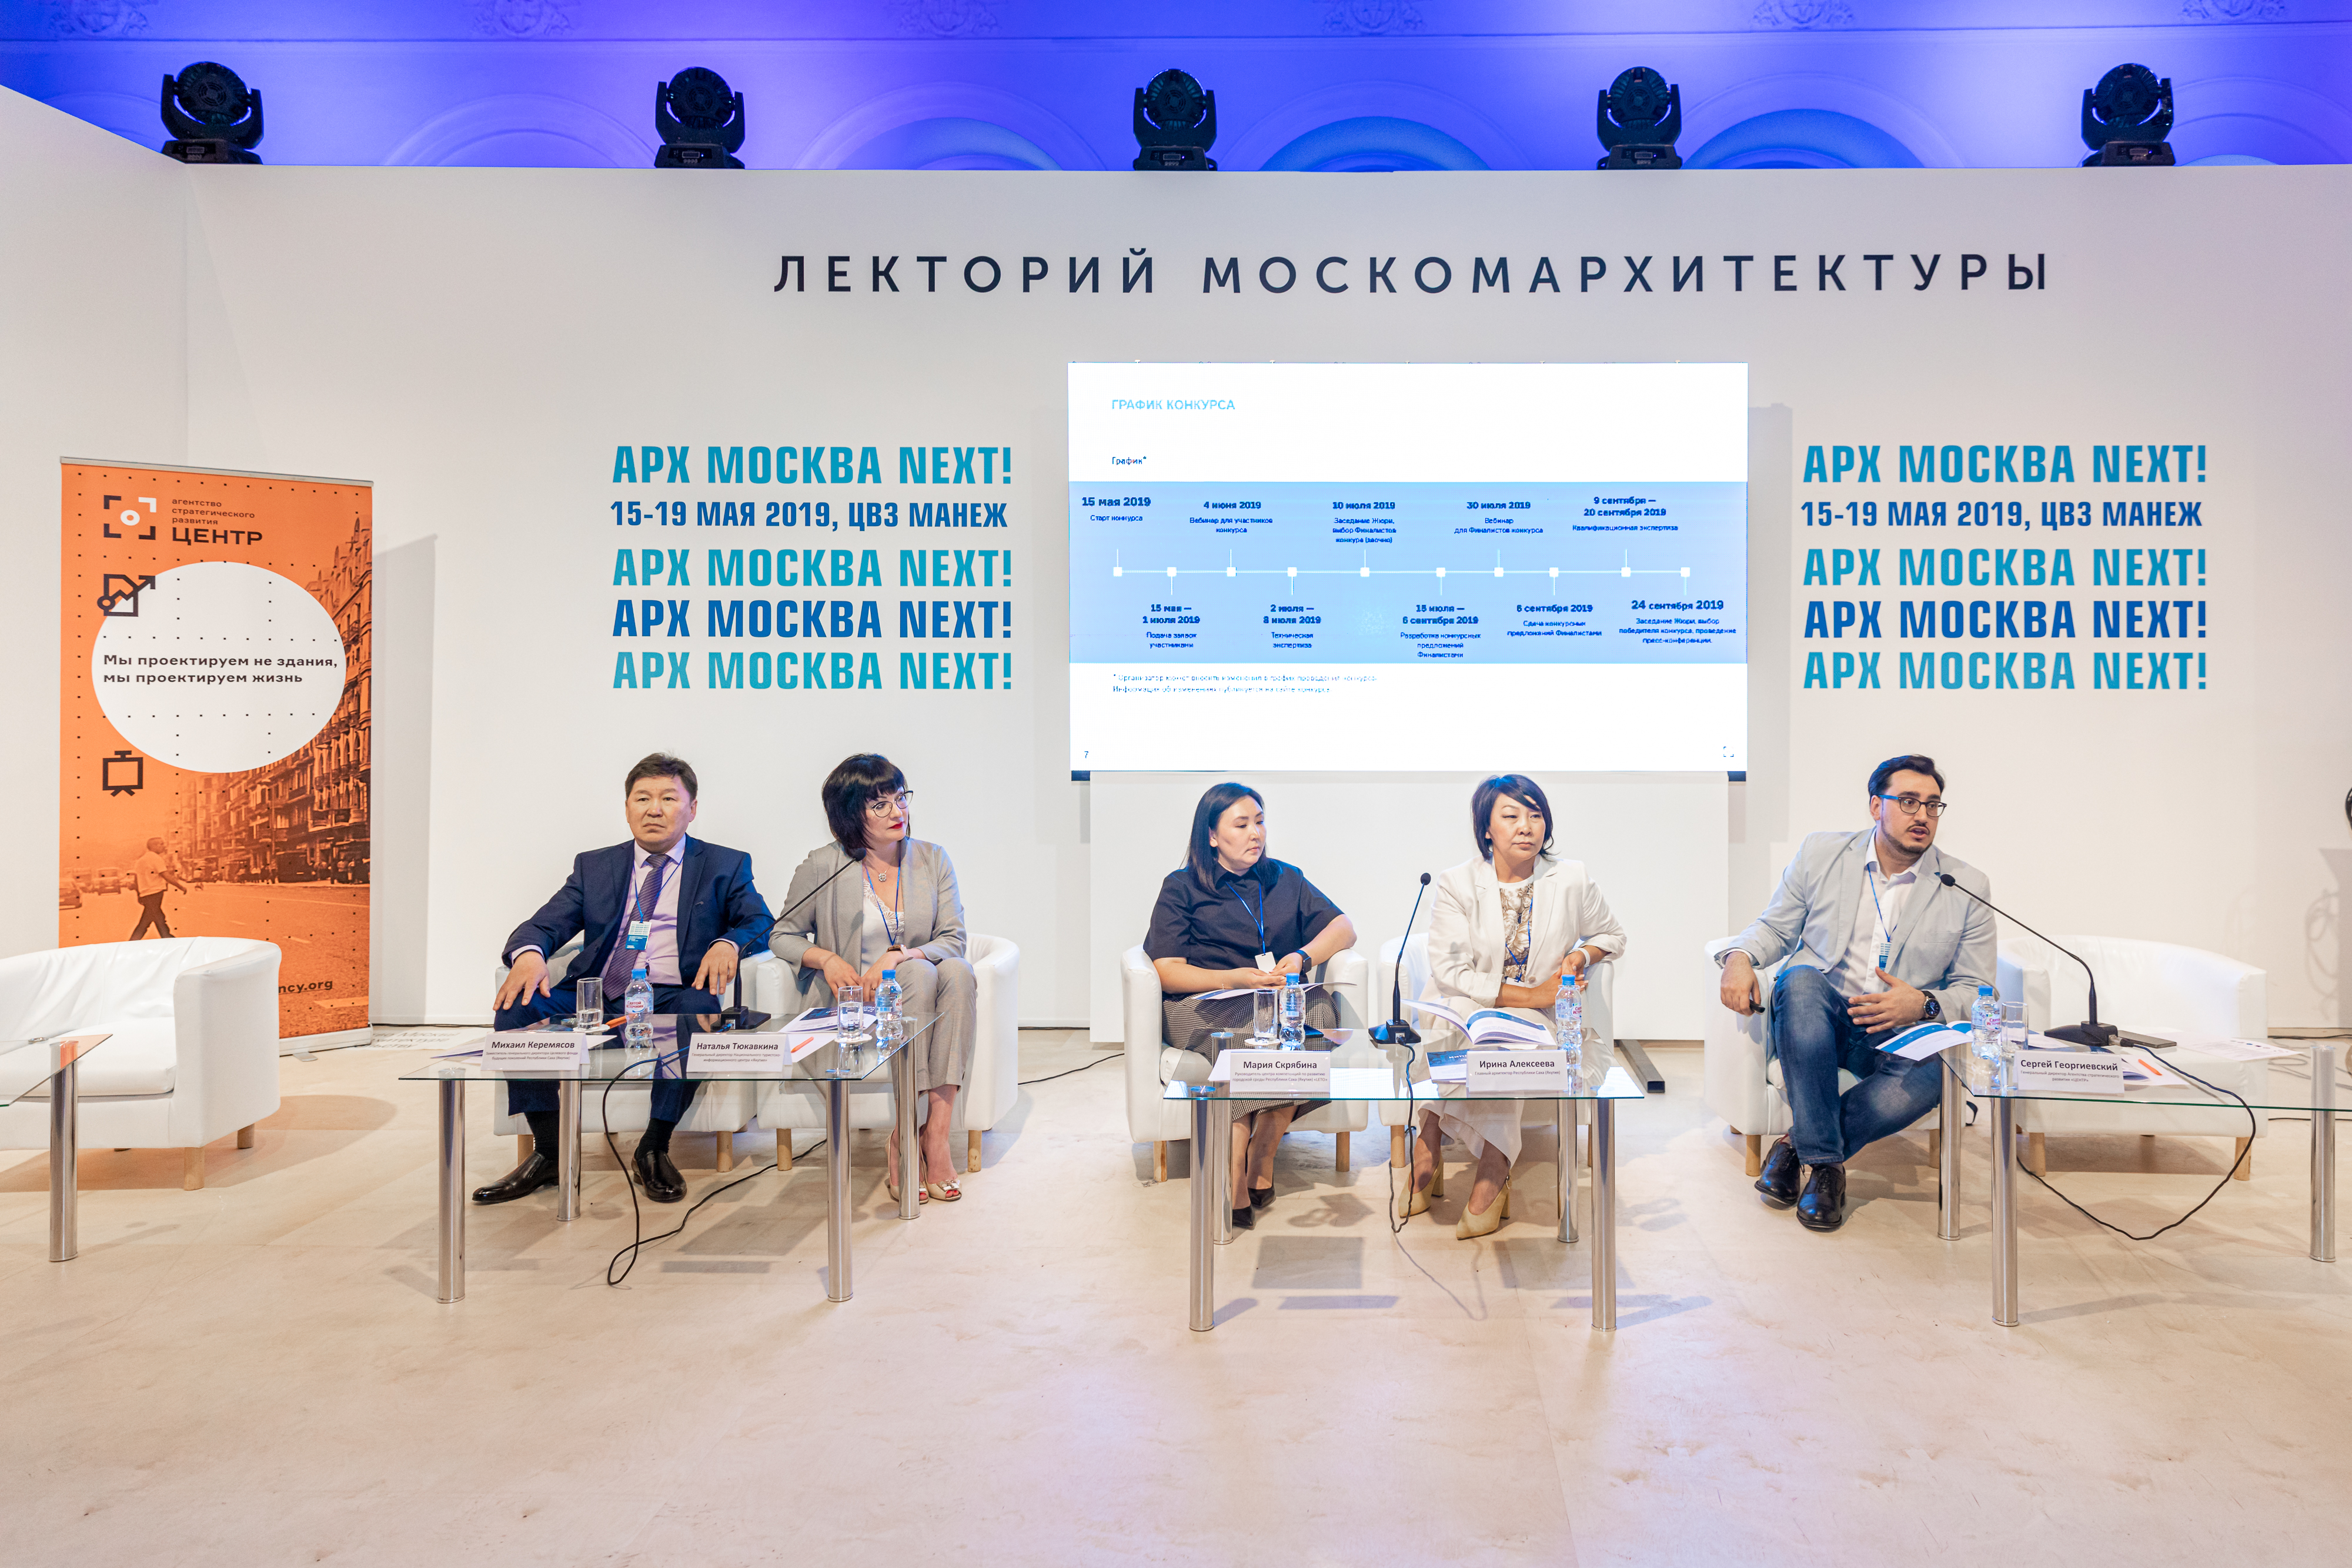 Competition for the development of concepеt for a tourism cluster in Oymyakon started in Moscow